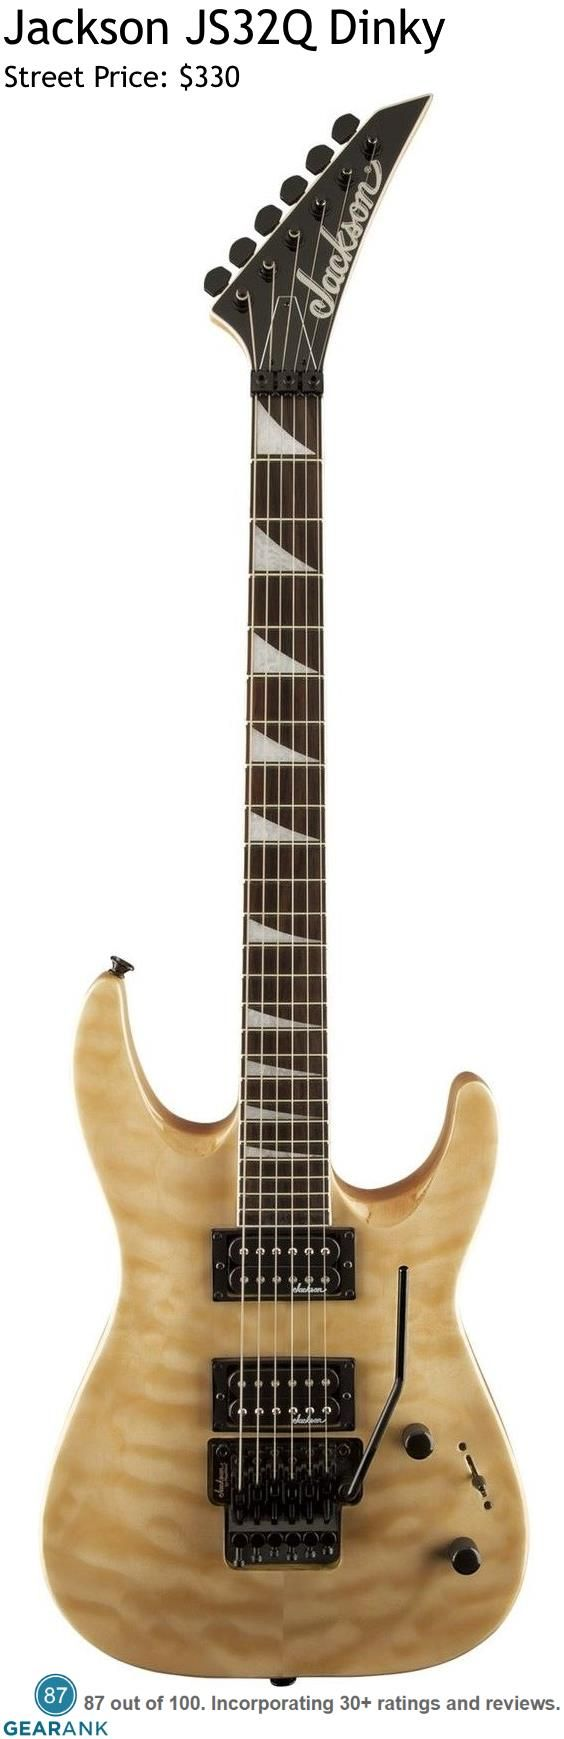 Jackson JS32Q Dinky. This budget friendly Jackson comes with a Poplar body and quilt Maple Top with a Natural Blonde finish.  It sports a Double-locking Floyd Rose Licensed Tremolo along with 2 Jackson High Output Humbucker pickups.  For a Detailed Guide to Electric Guitars Under $500 see https://www.gearank.com/guides/solidbody-electric-guitars-under-500